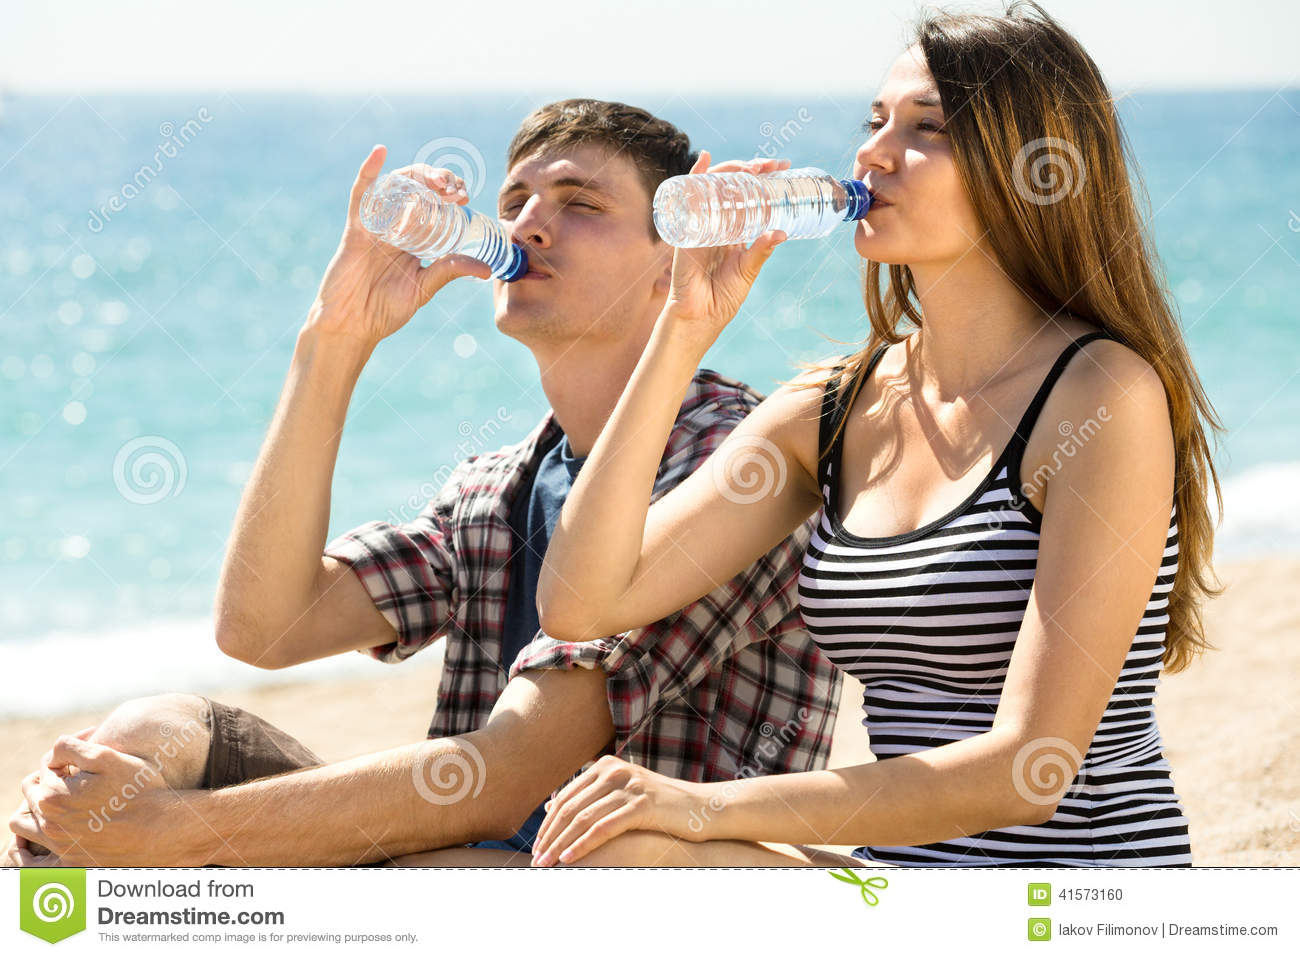 Couple on the beach drinking fresh water